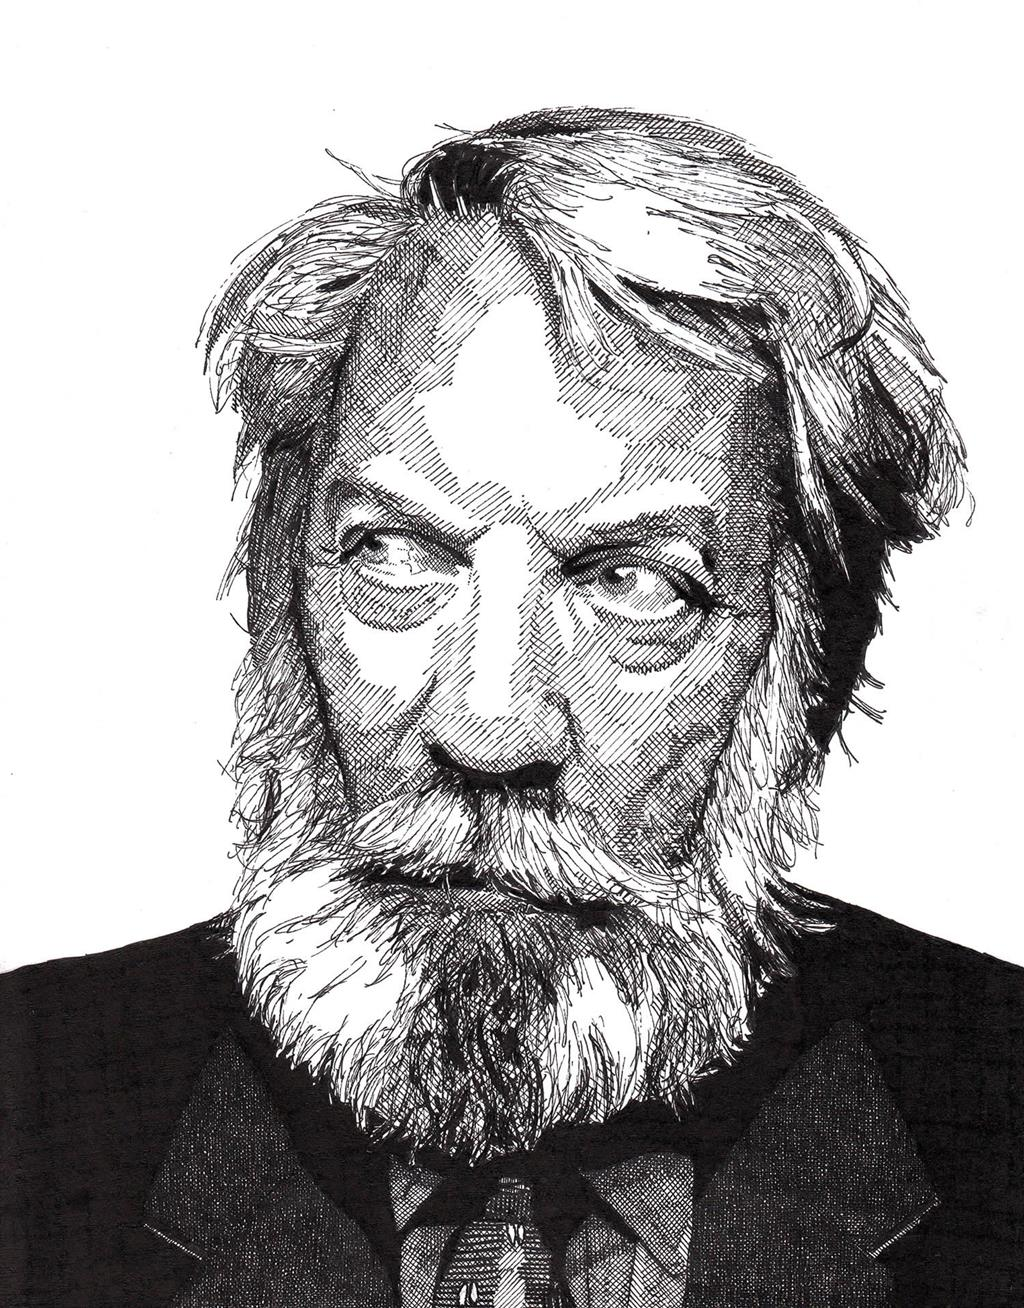 Love Quotes Android Phone Wallpapers Famous Actor Portrait Sketches Art Xcitefun Net